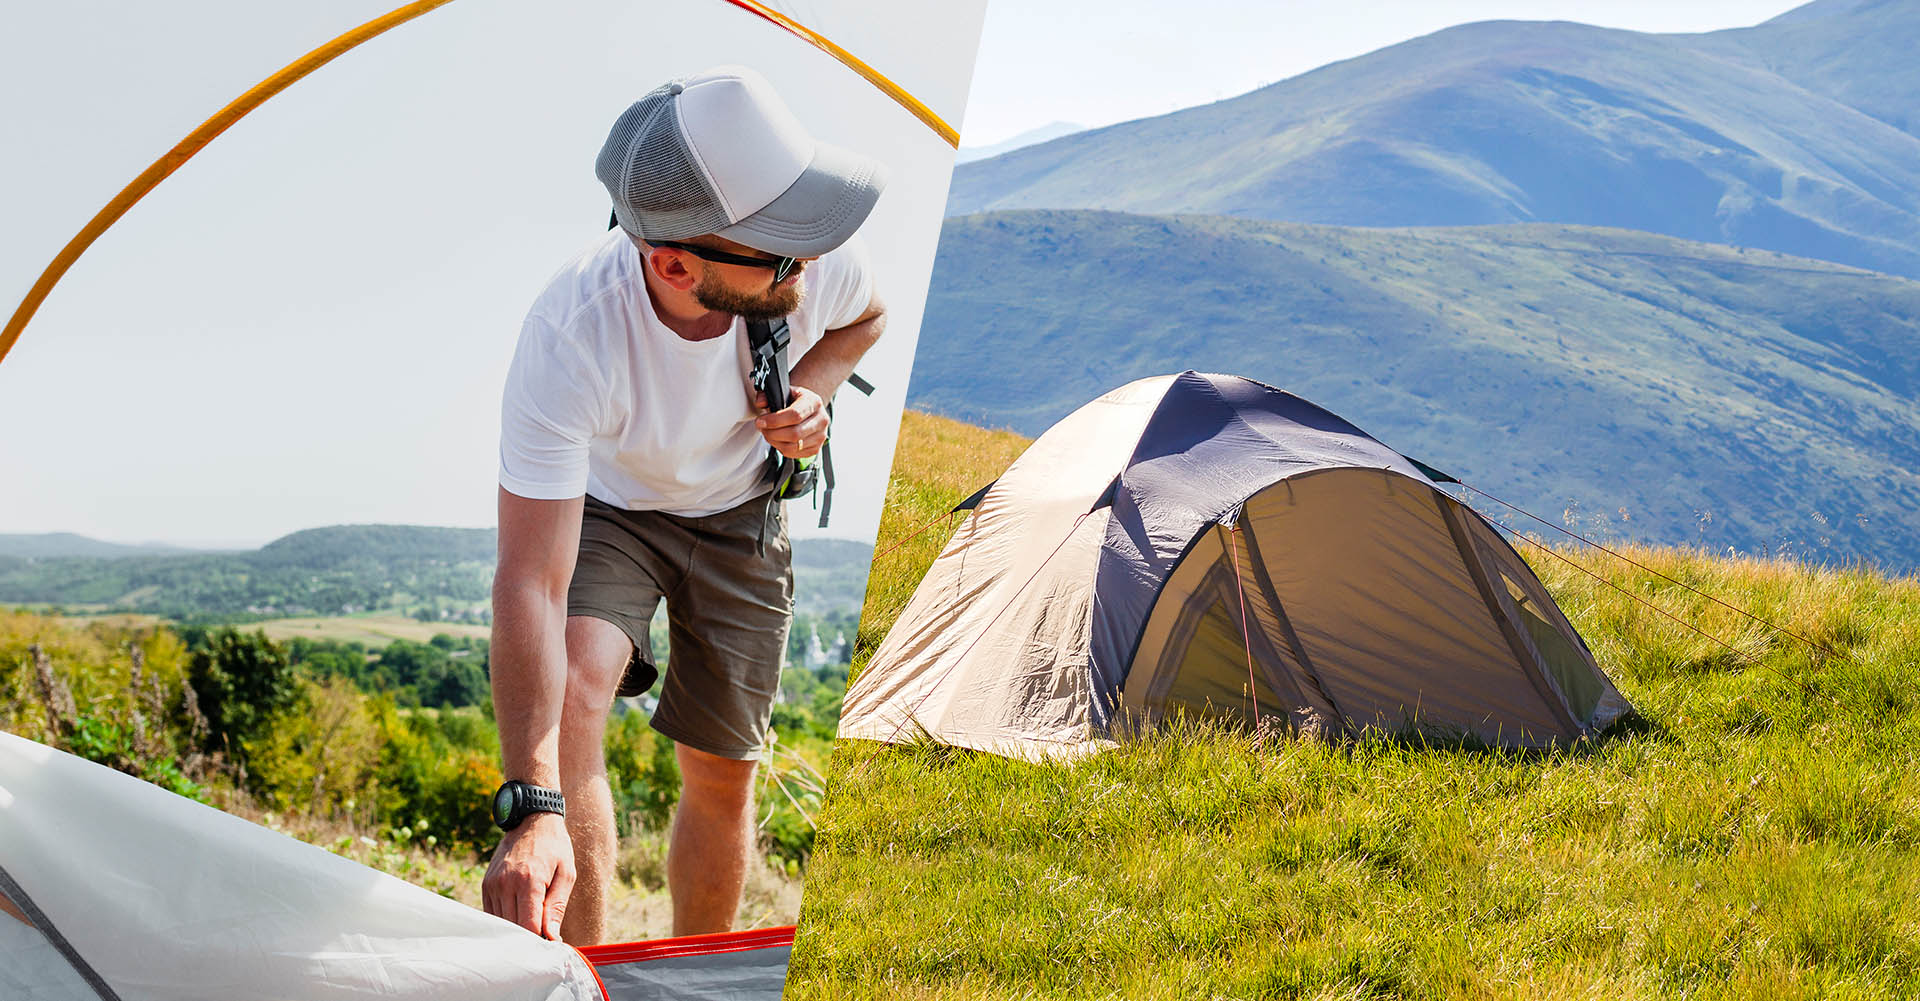 Tent and Sleeping Bag